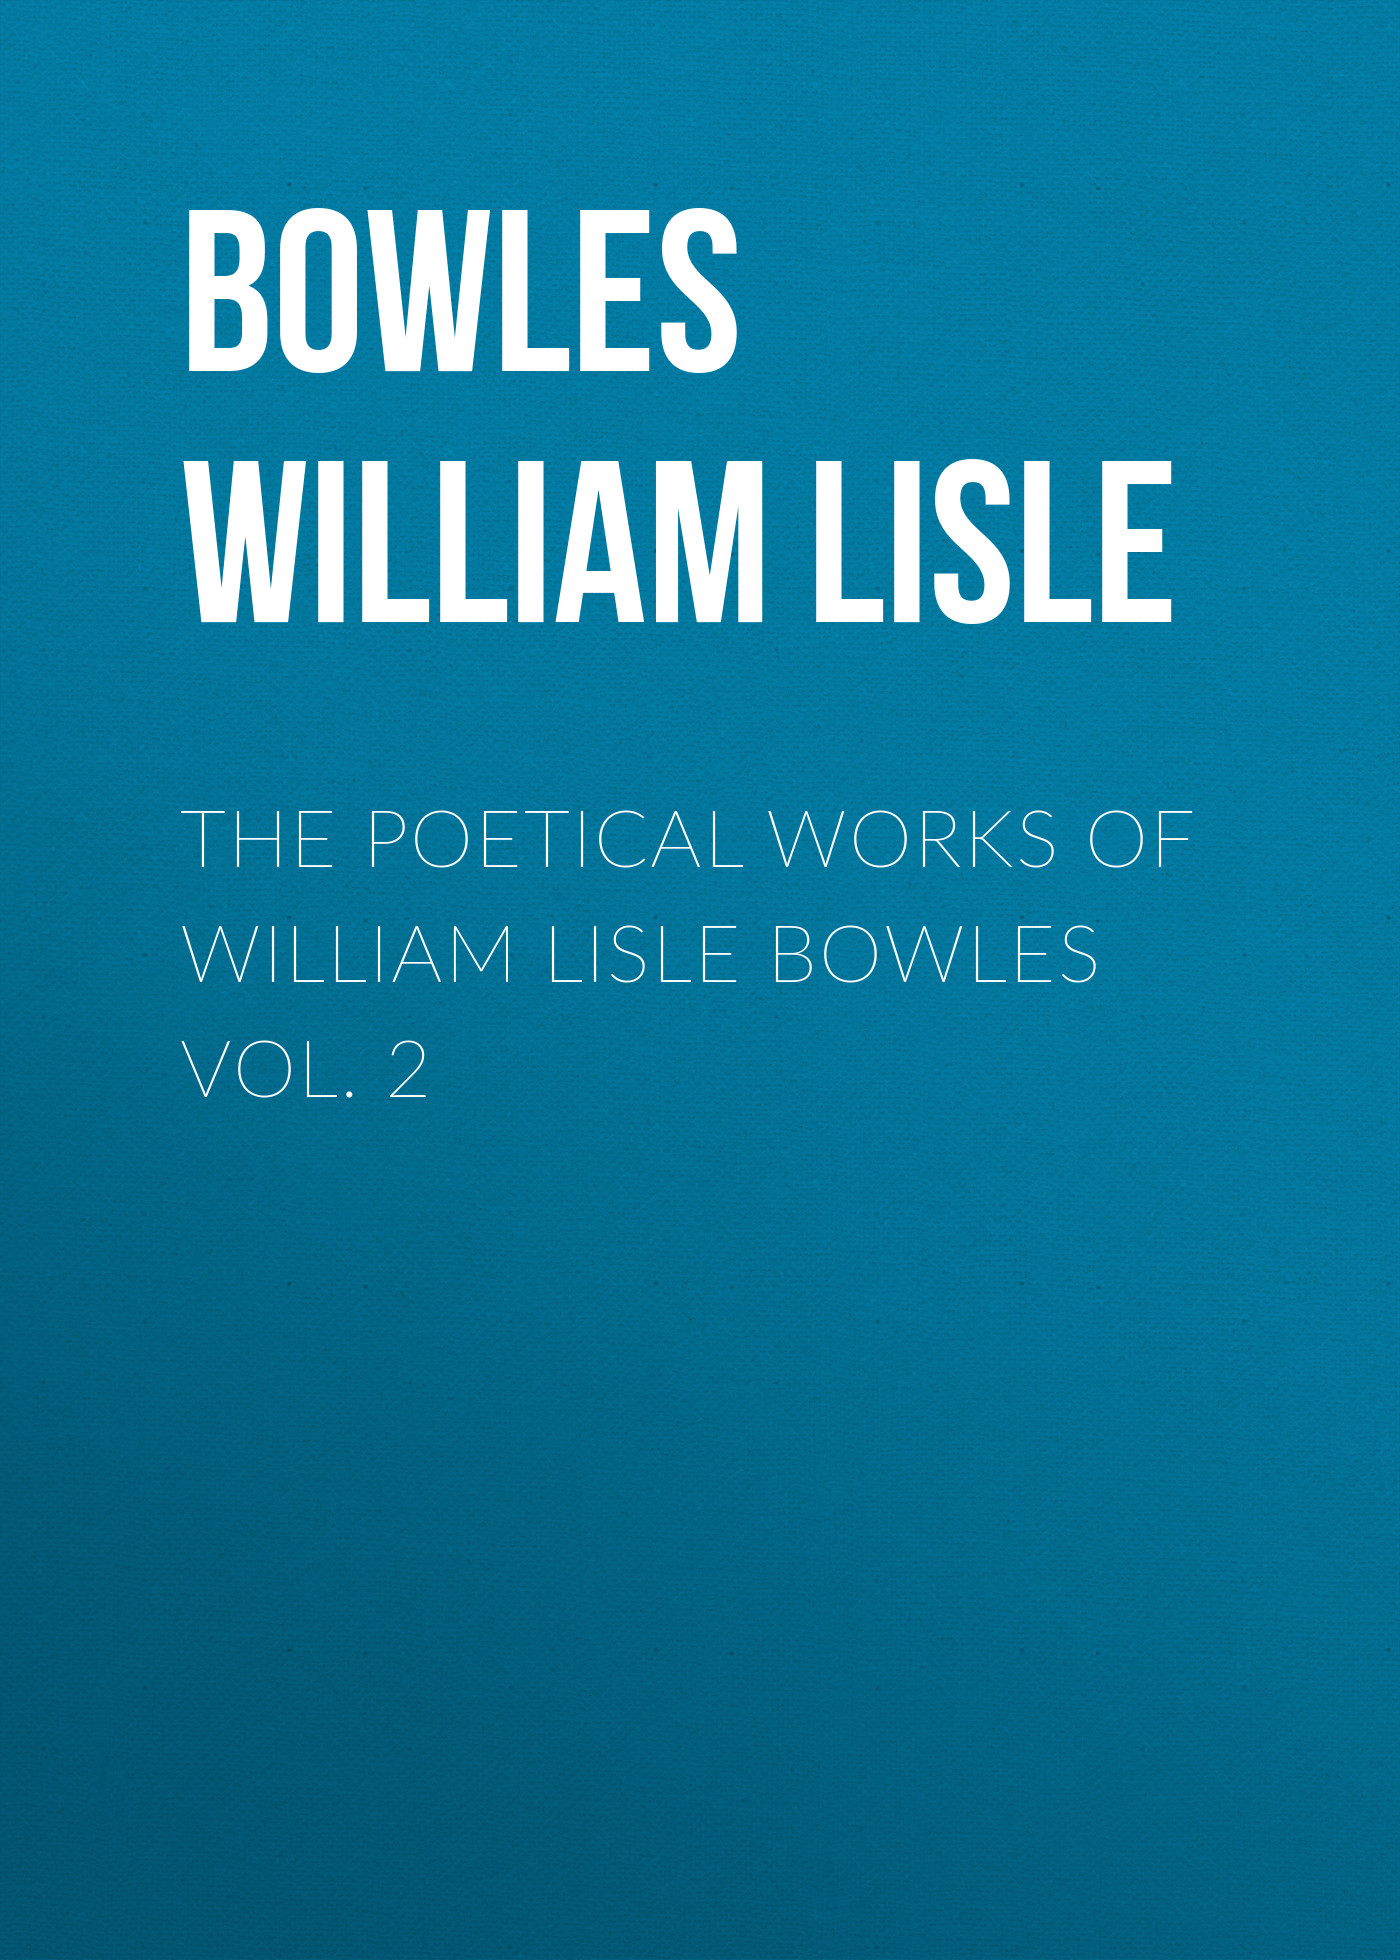 Bowles William Lisle The Poetical Works of William Lisle Bowles Vol. 2 william james the letters of william james vol 2